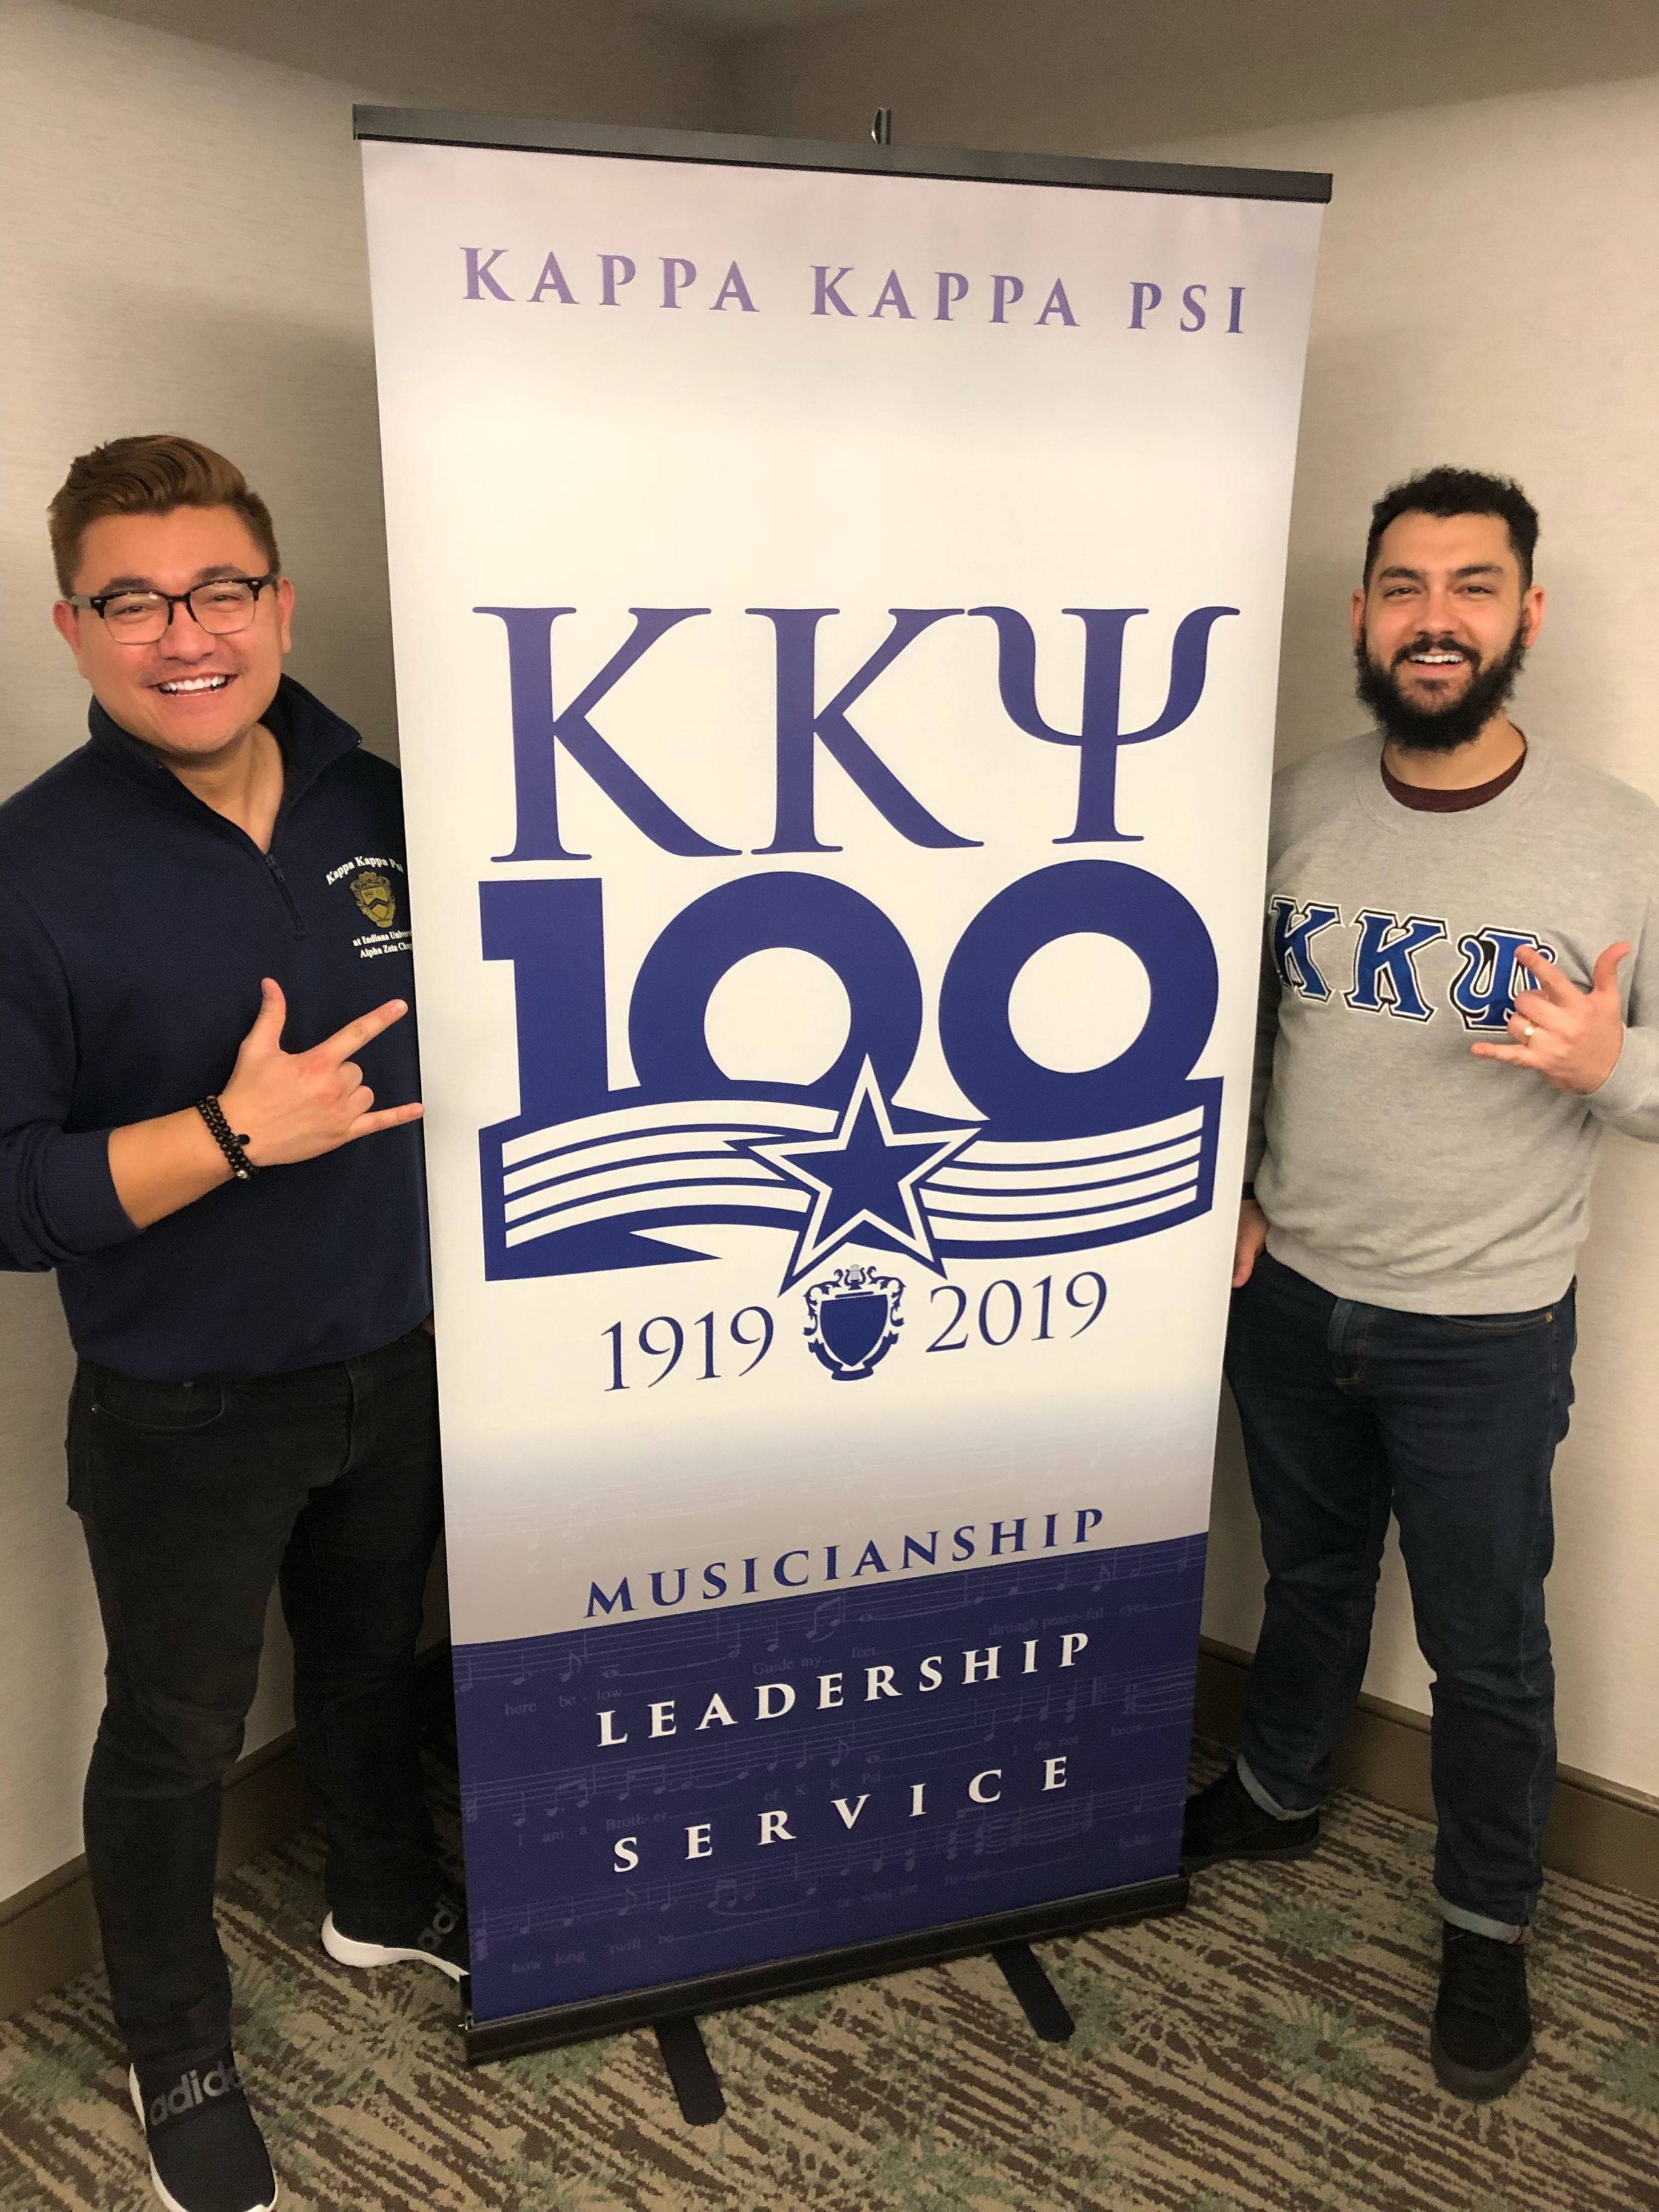 NCD and SED meets again! Jason Ortiz served as Southeast District President at the same time that I served as North Central District President. Very excited to continue our service to KKPsi together!